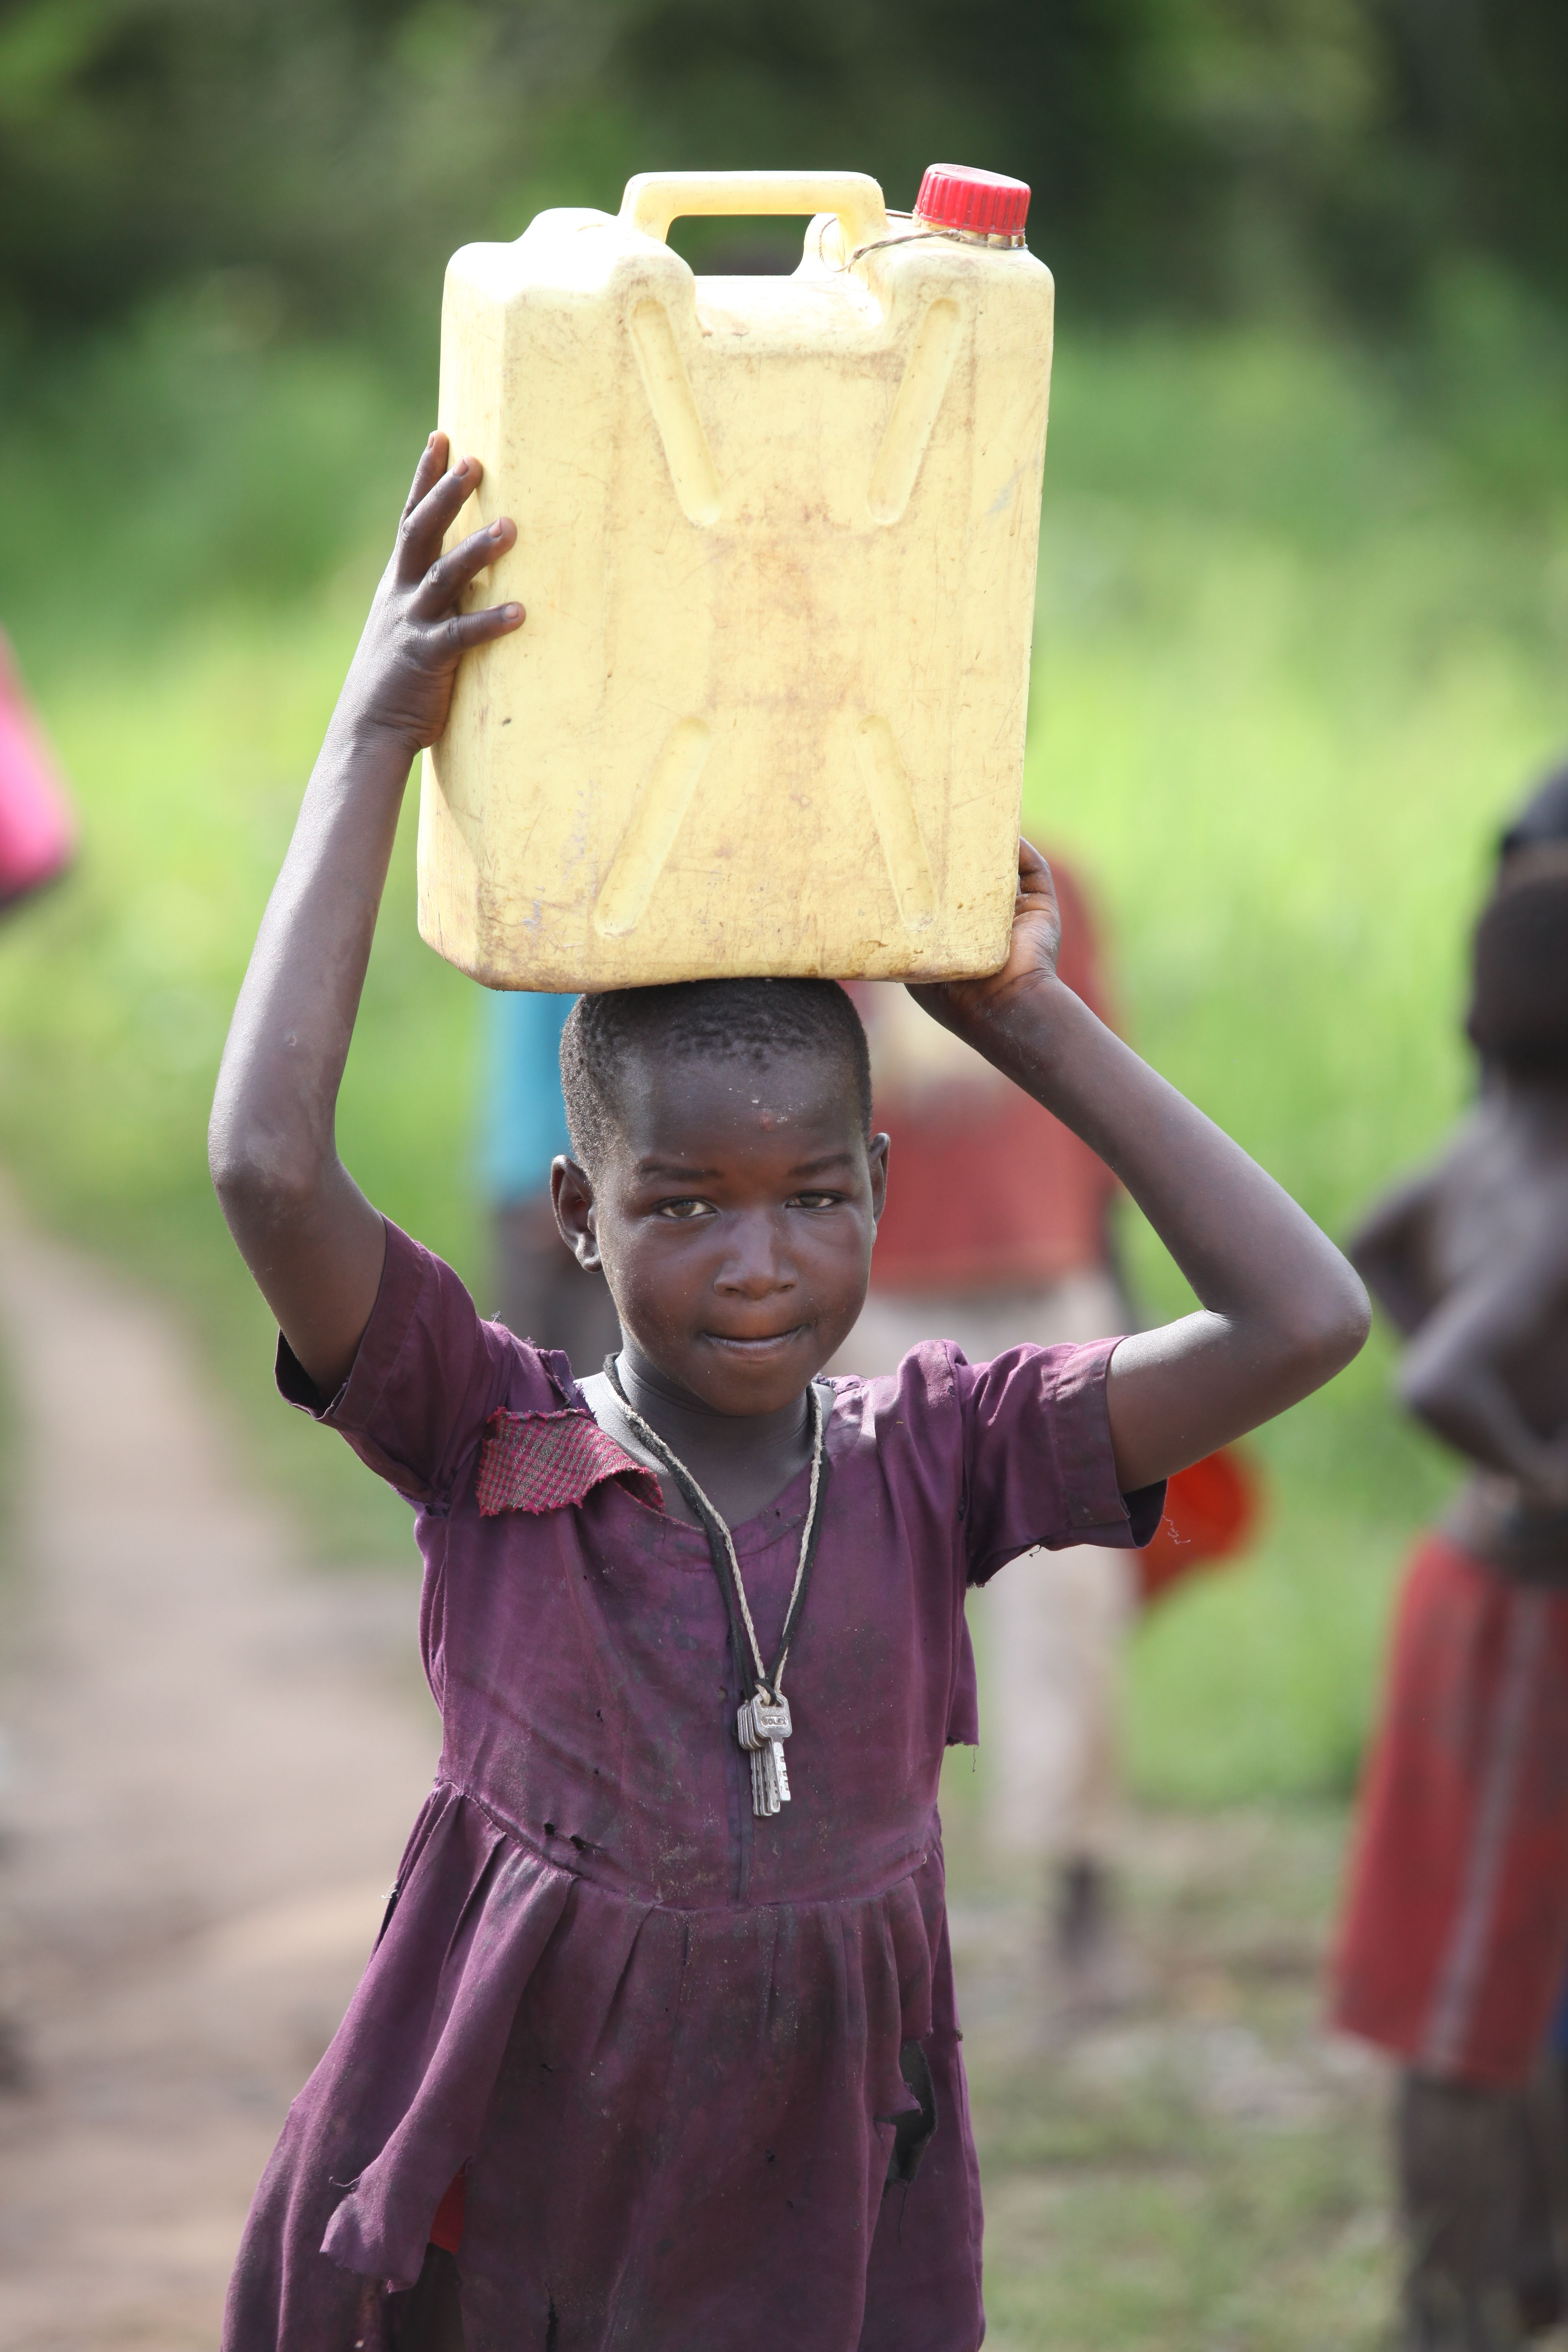 The weight of water that women in Africa carry on their heads is ...